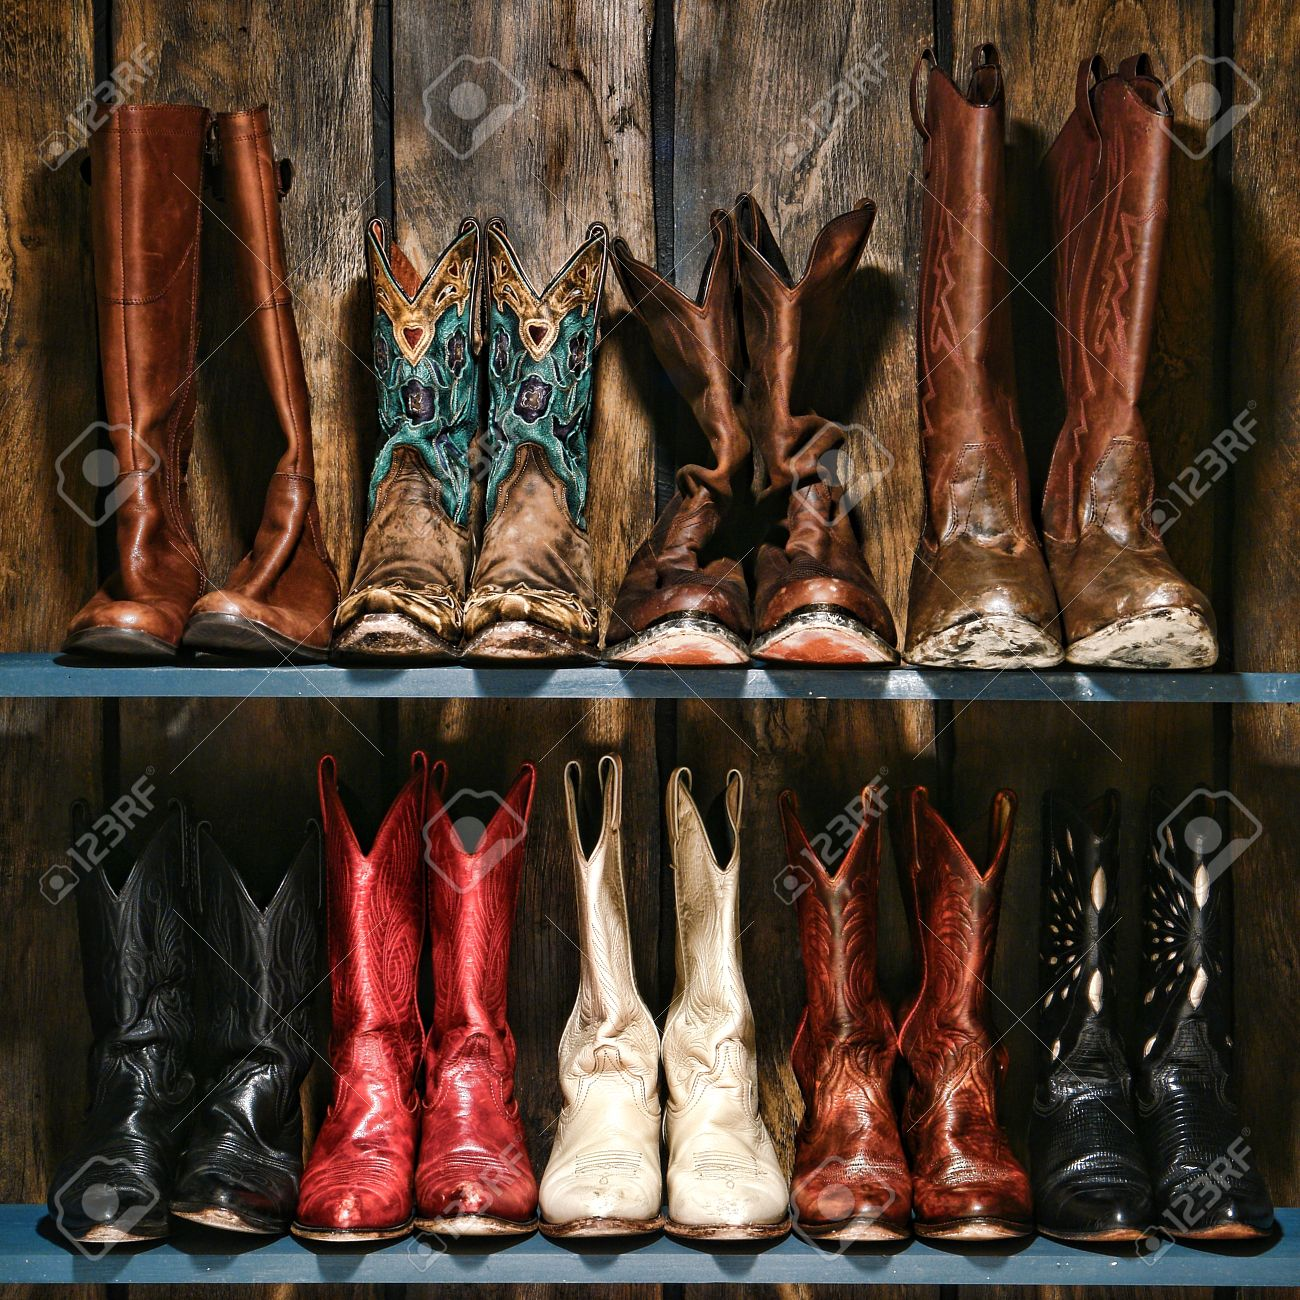 Cowgirl Boots Images & Stock Pictures. Royalty Free Cowgirl Boots ...